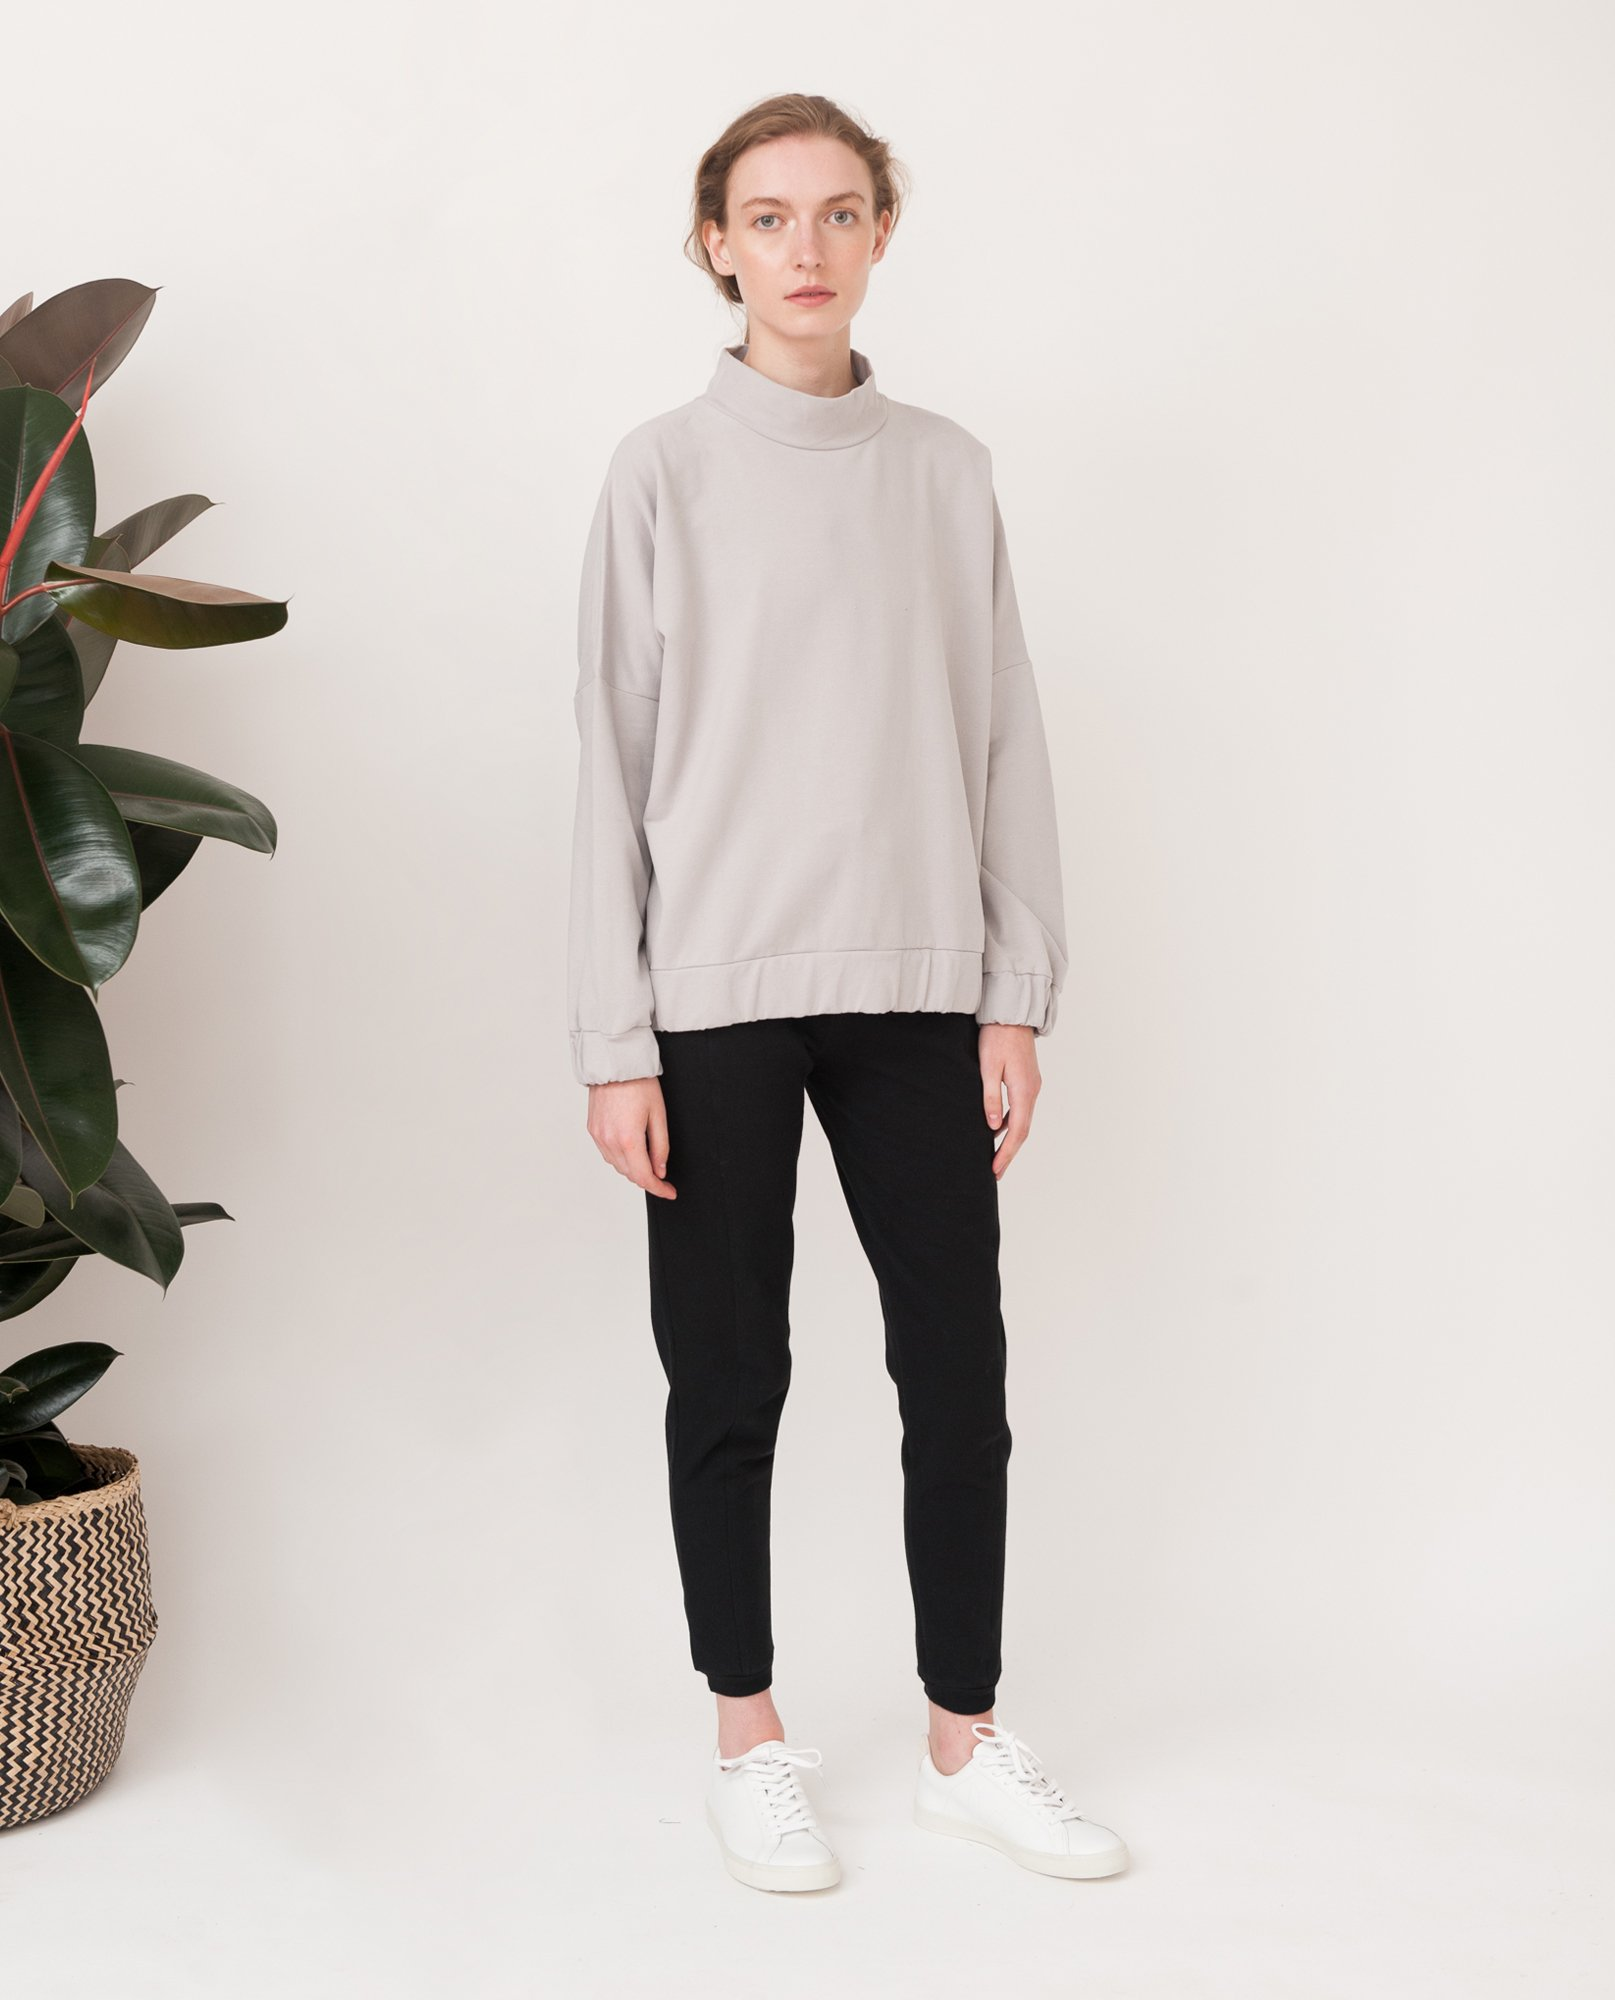 JORDAN Organic Cotton Sweatshirt In Flint from Beaumont Organic